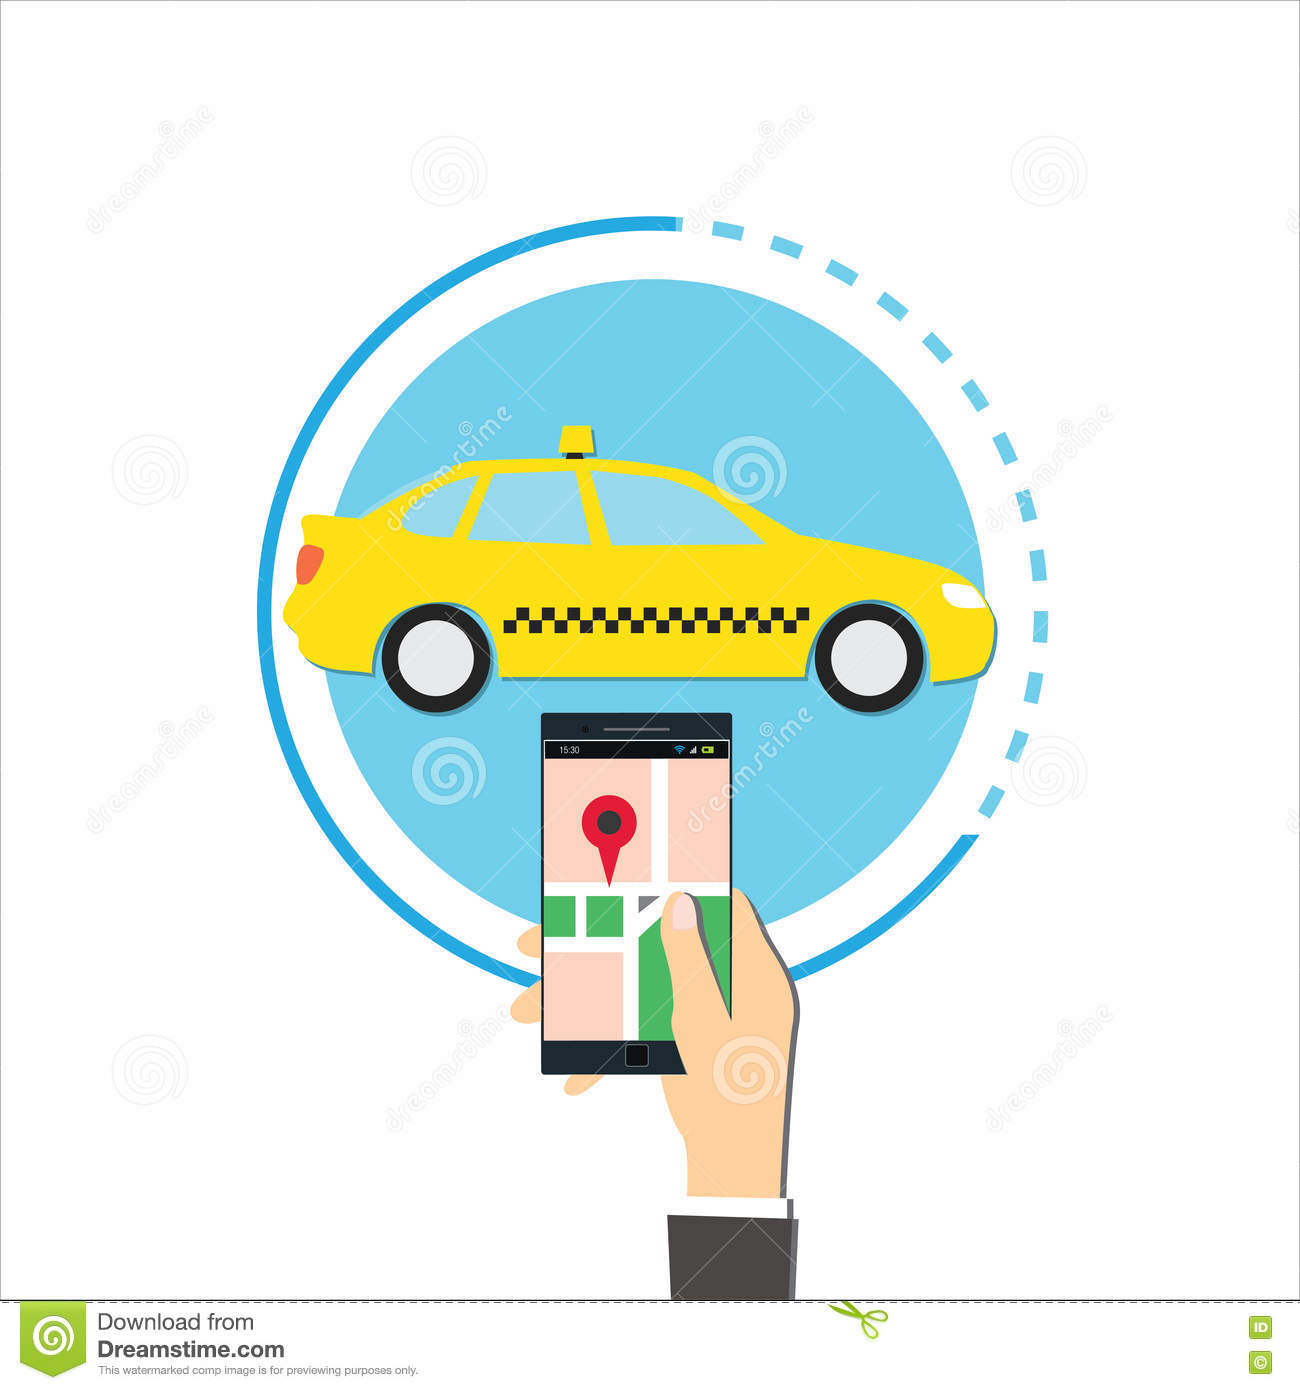 Order a taxi through the app on your phone vector illustration stock illustration - Order a cab ...